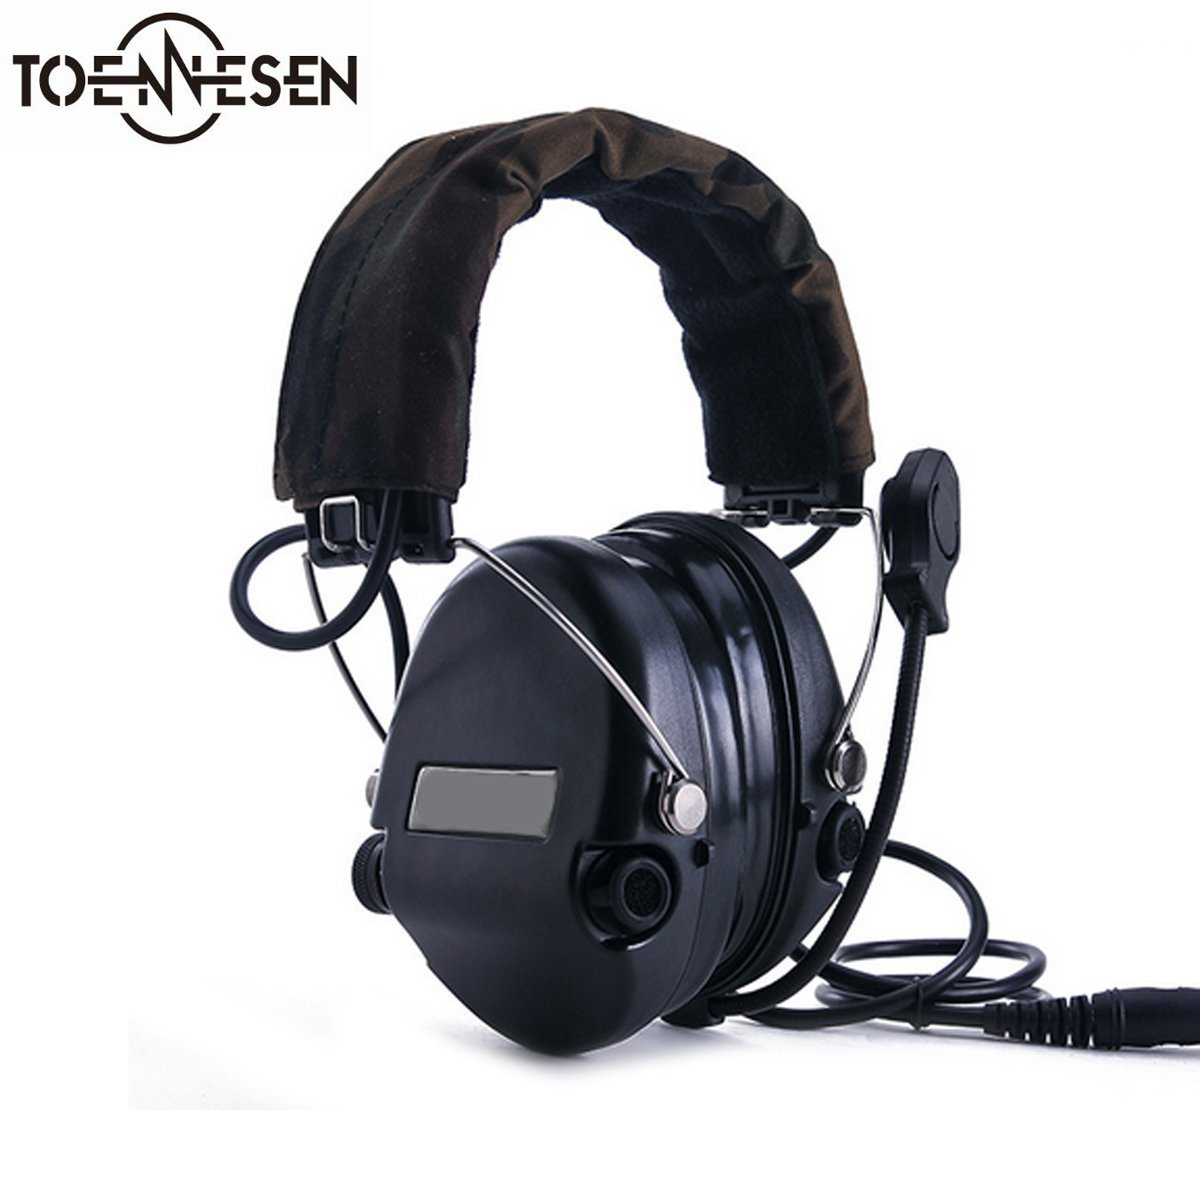 Electronic Sport Sound Amplification Shooting EarMuff, Comtac 4 by TOENNESEN